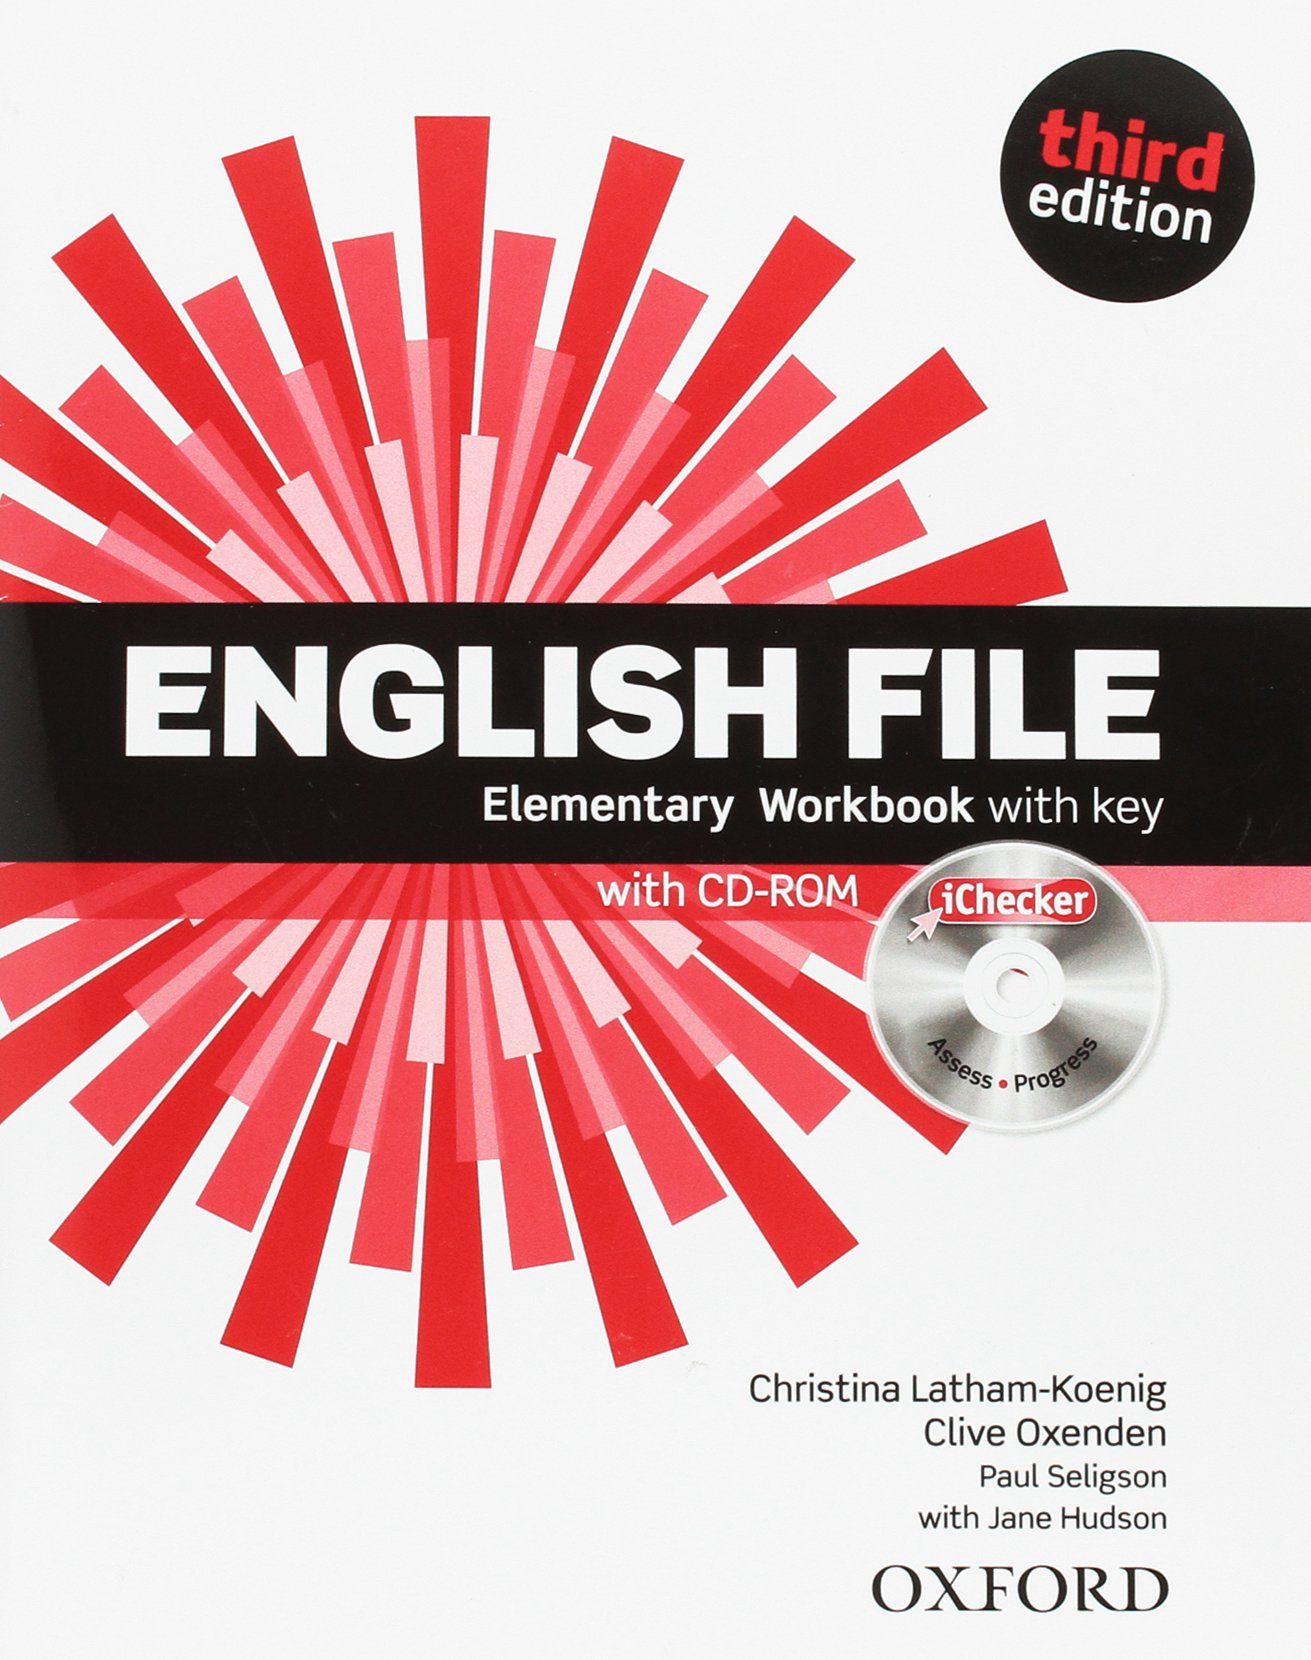 ENGLISH FILE ELEMENTARY 3rd ED Workbook with Key + iChecker